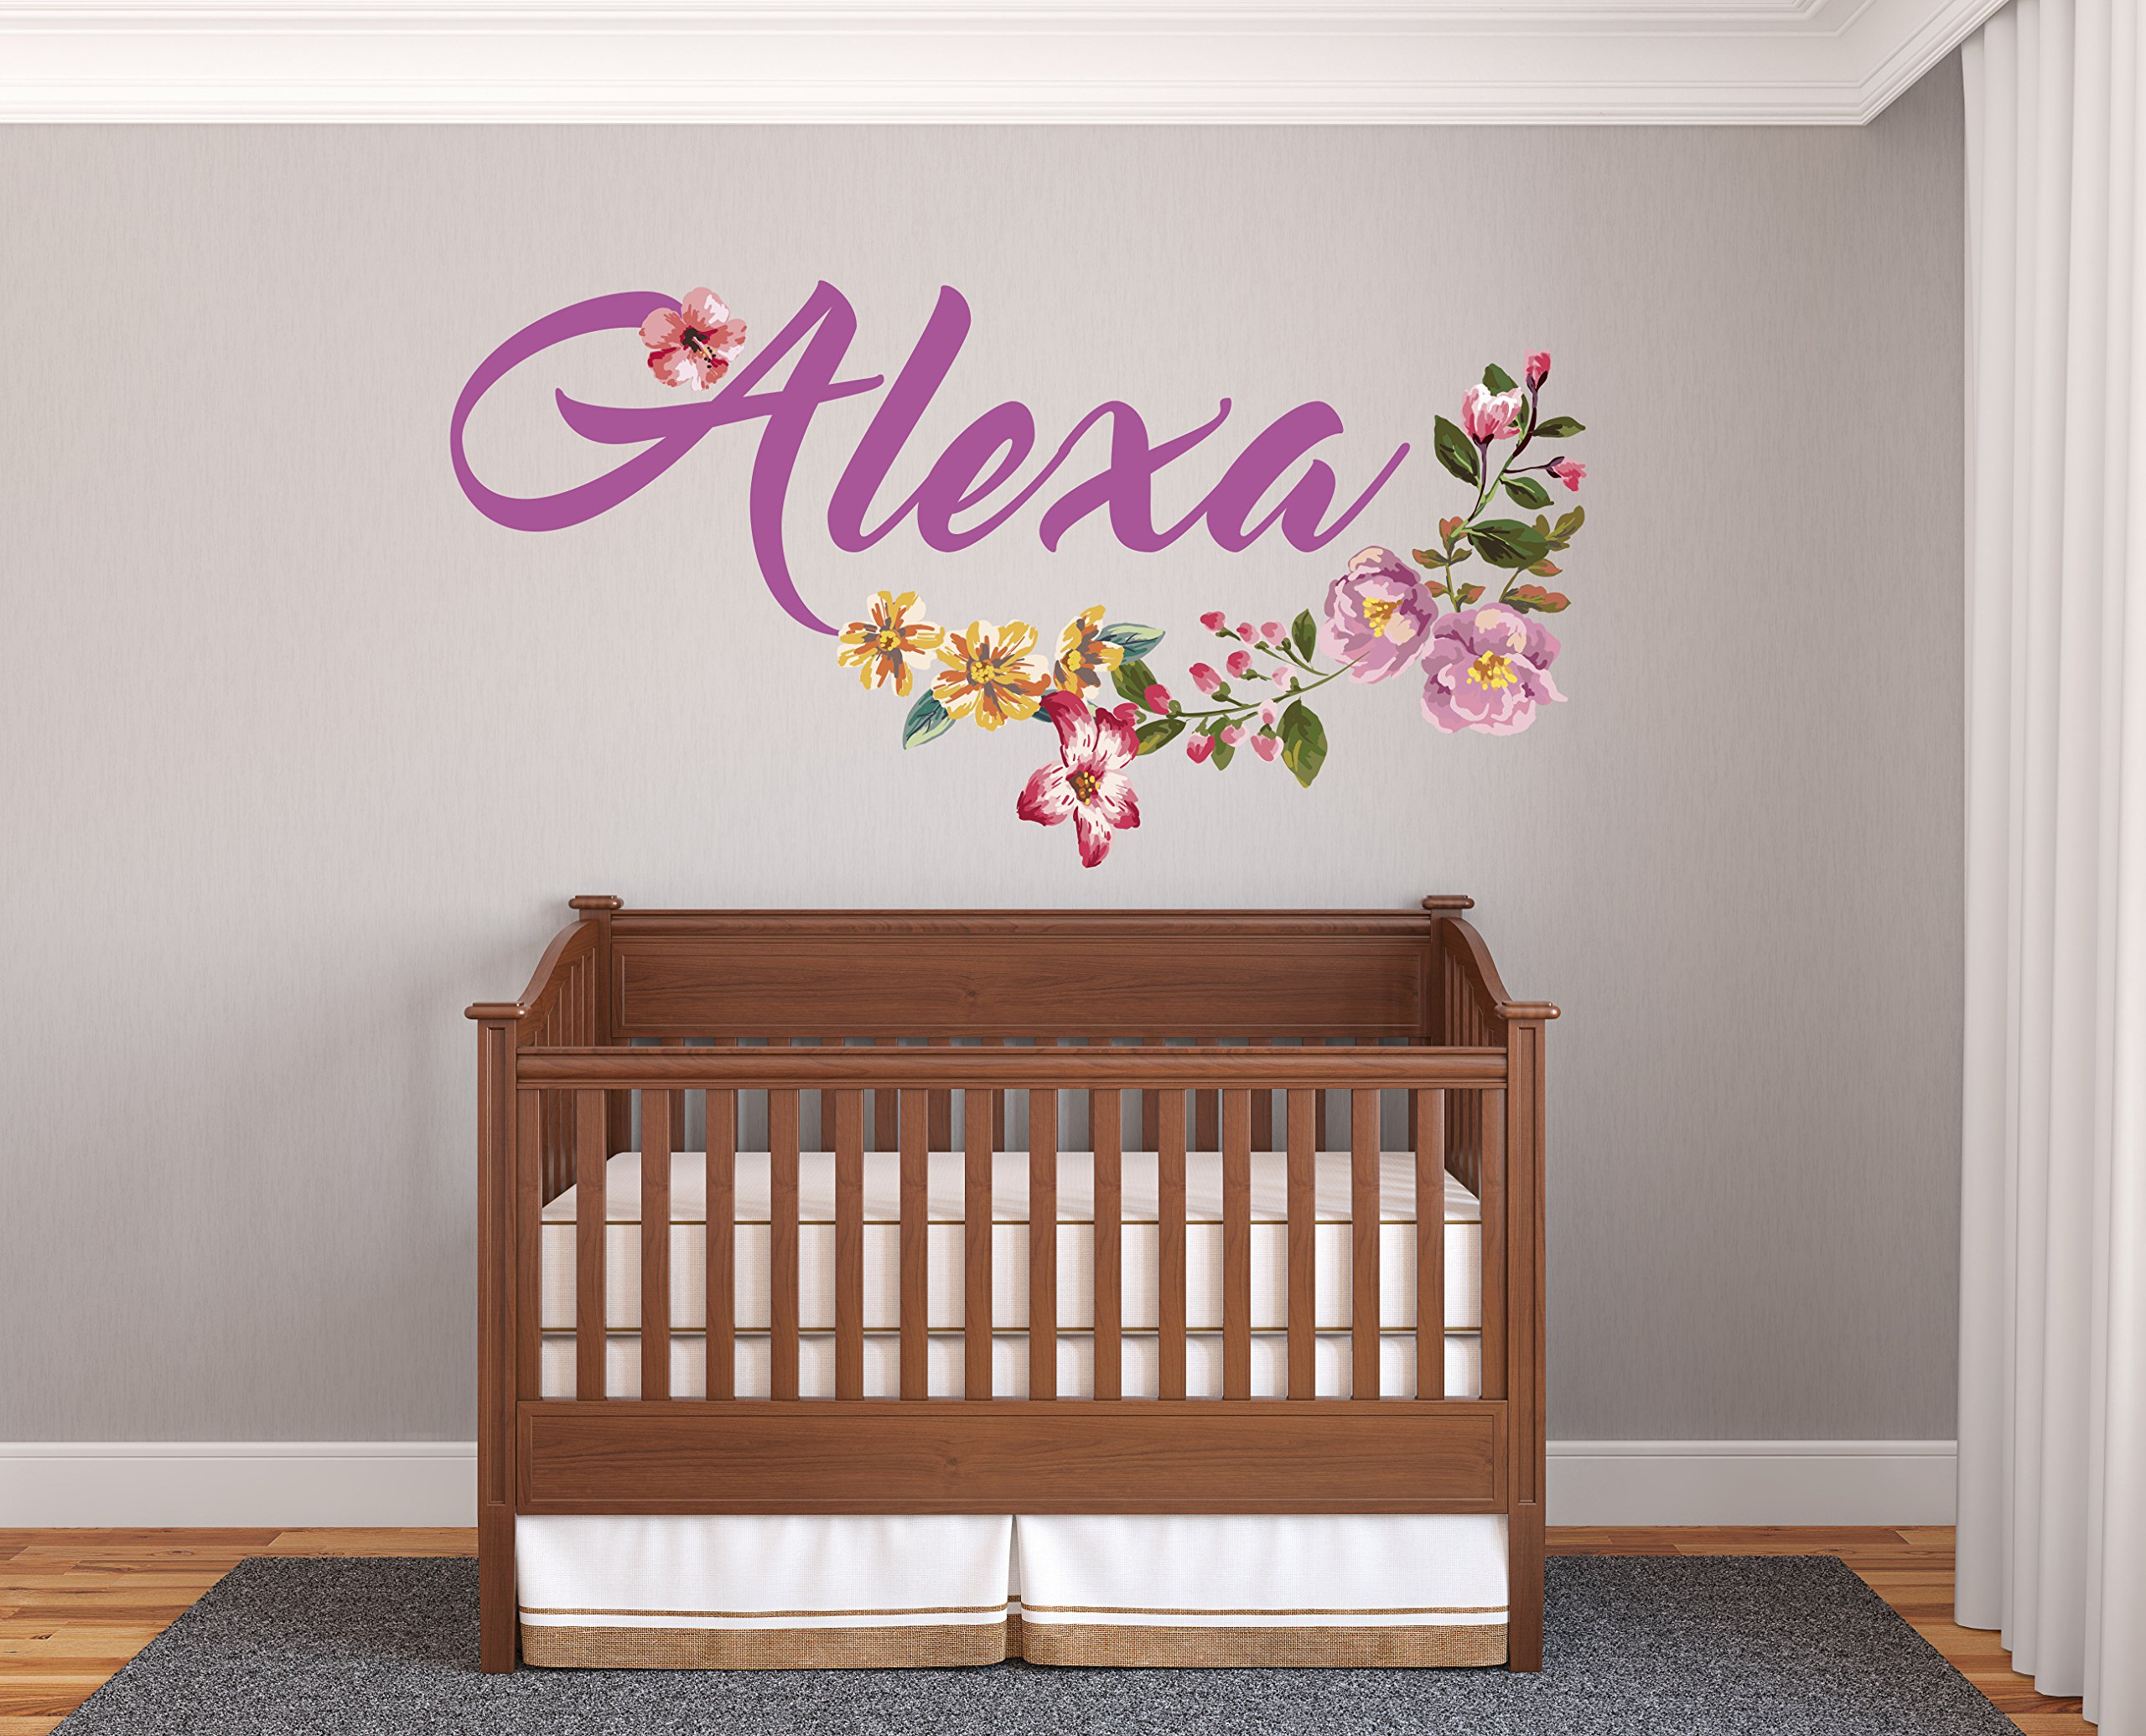 Custom Name Beautiful Flowers - Prime Series - Baby Girl - Nursery Wall Decal For Baby Room Decorations - Mural Wall Decal Sticker For Home Children's Bedroom (R10) (Wide 32''x17'' Height)